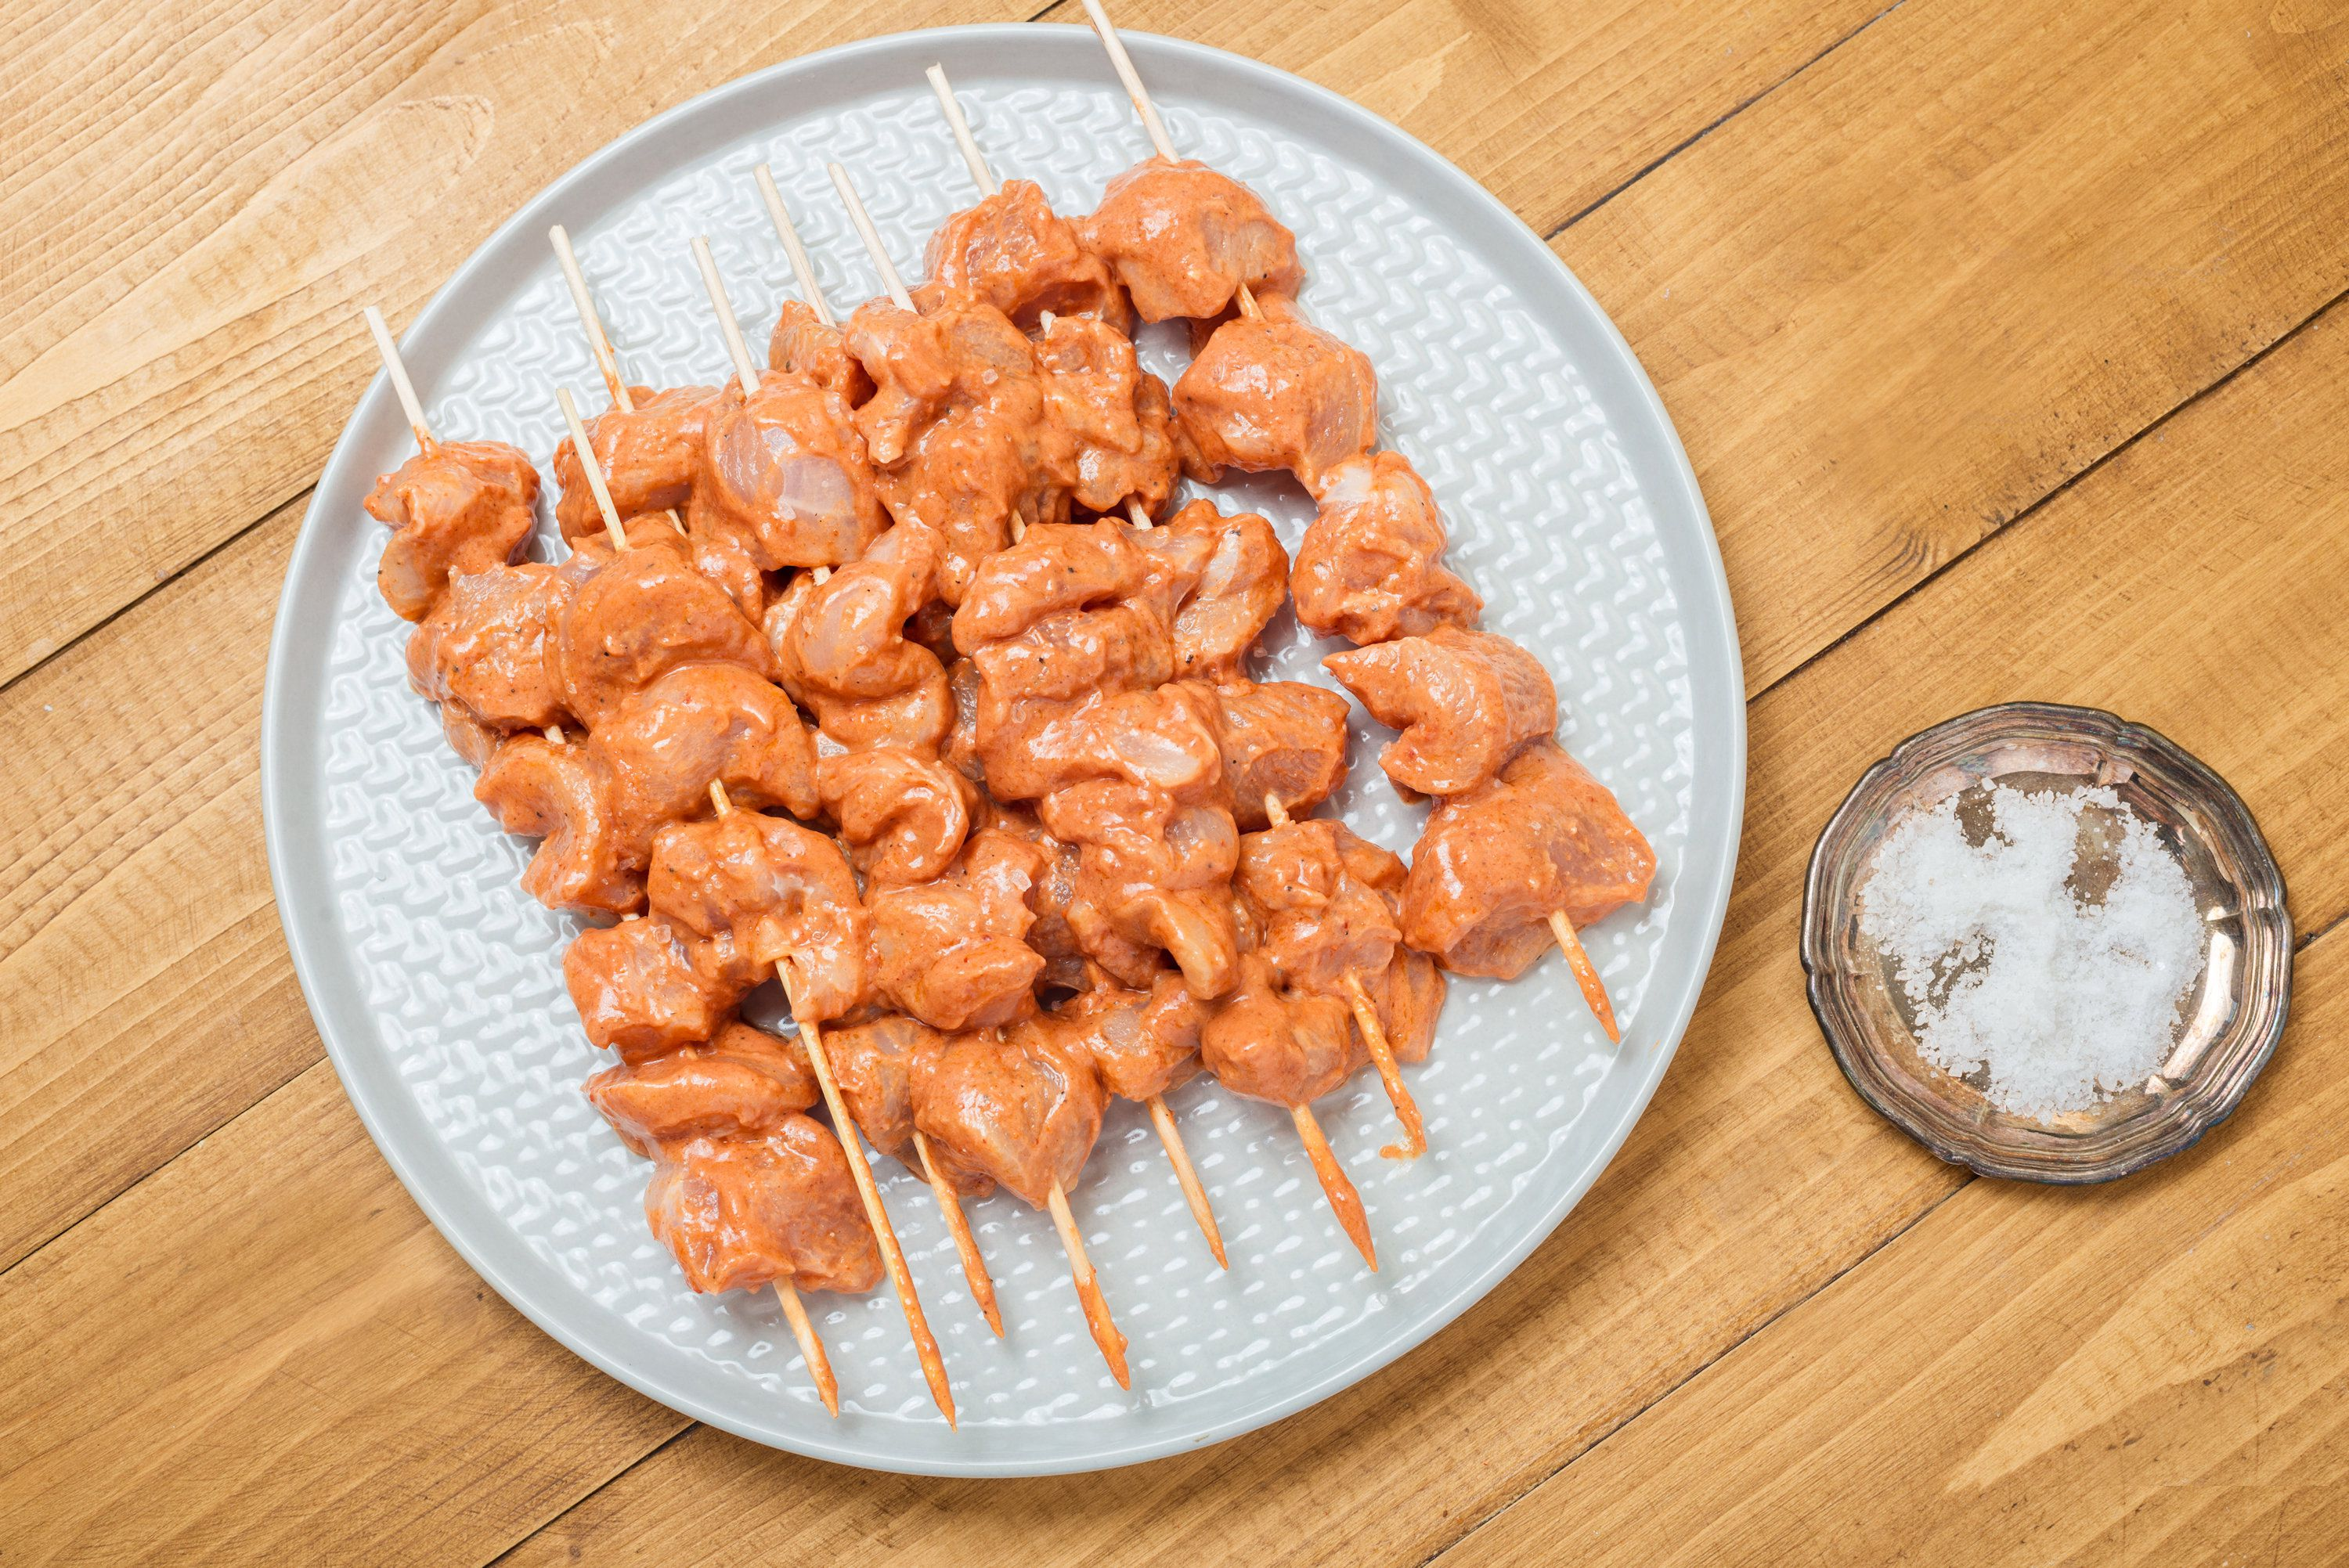 Turkish chicken kebabs on a plate, ready to cook